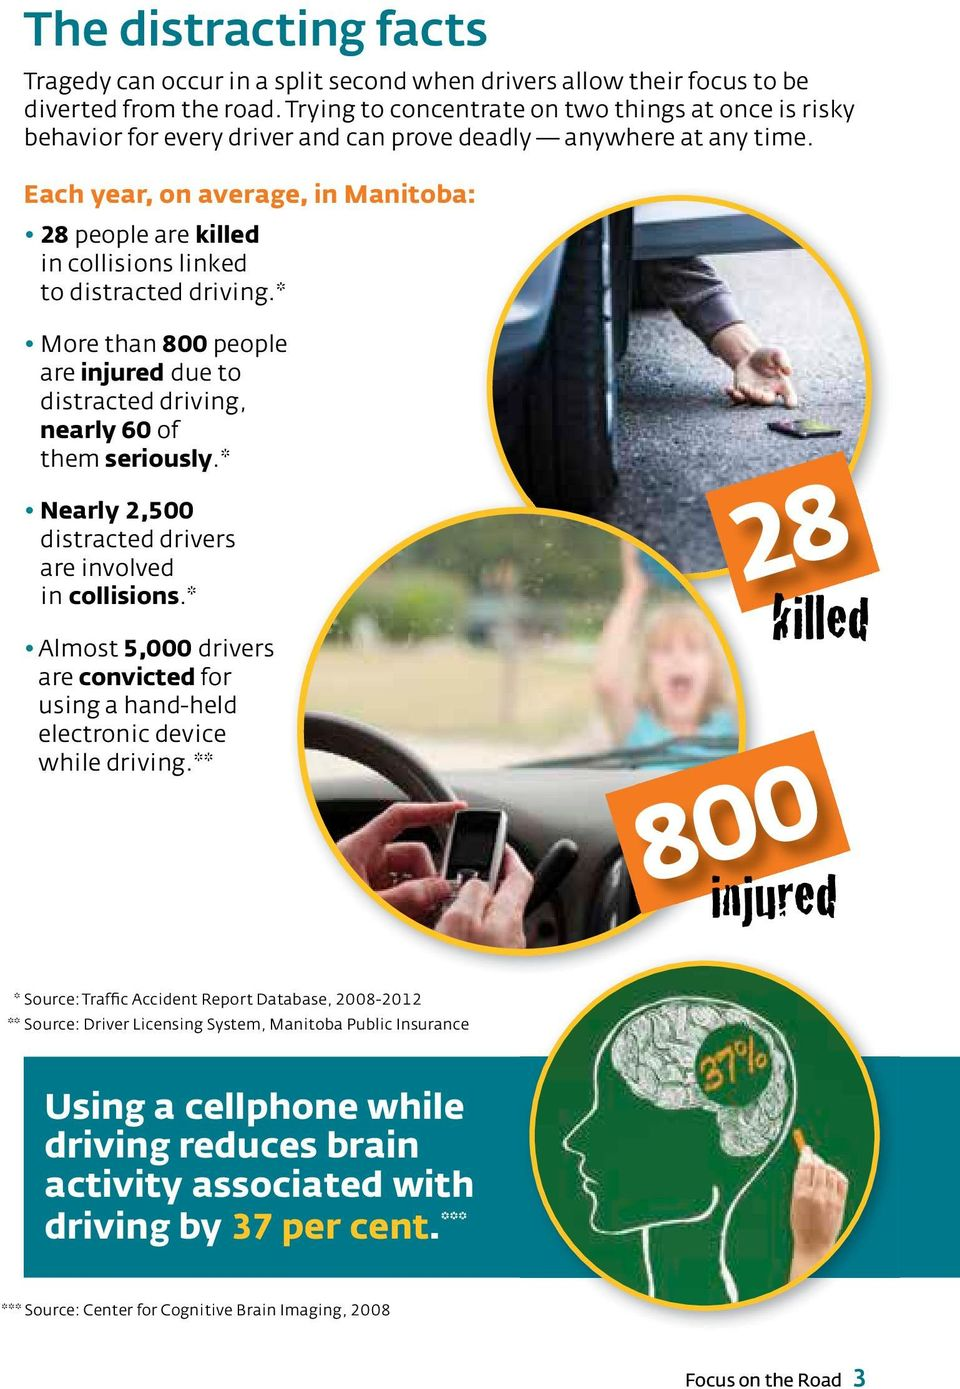 Each year, on average, in Manitoba: 28 people are killed in collisions linked to distracted driving.* More than 800 people are injured due to distracted driving, nearly 60 of them seriously.